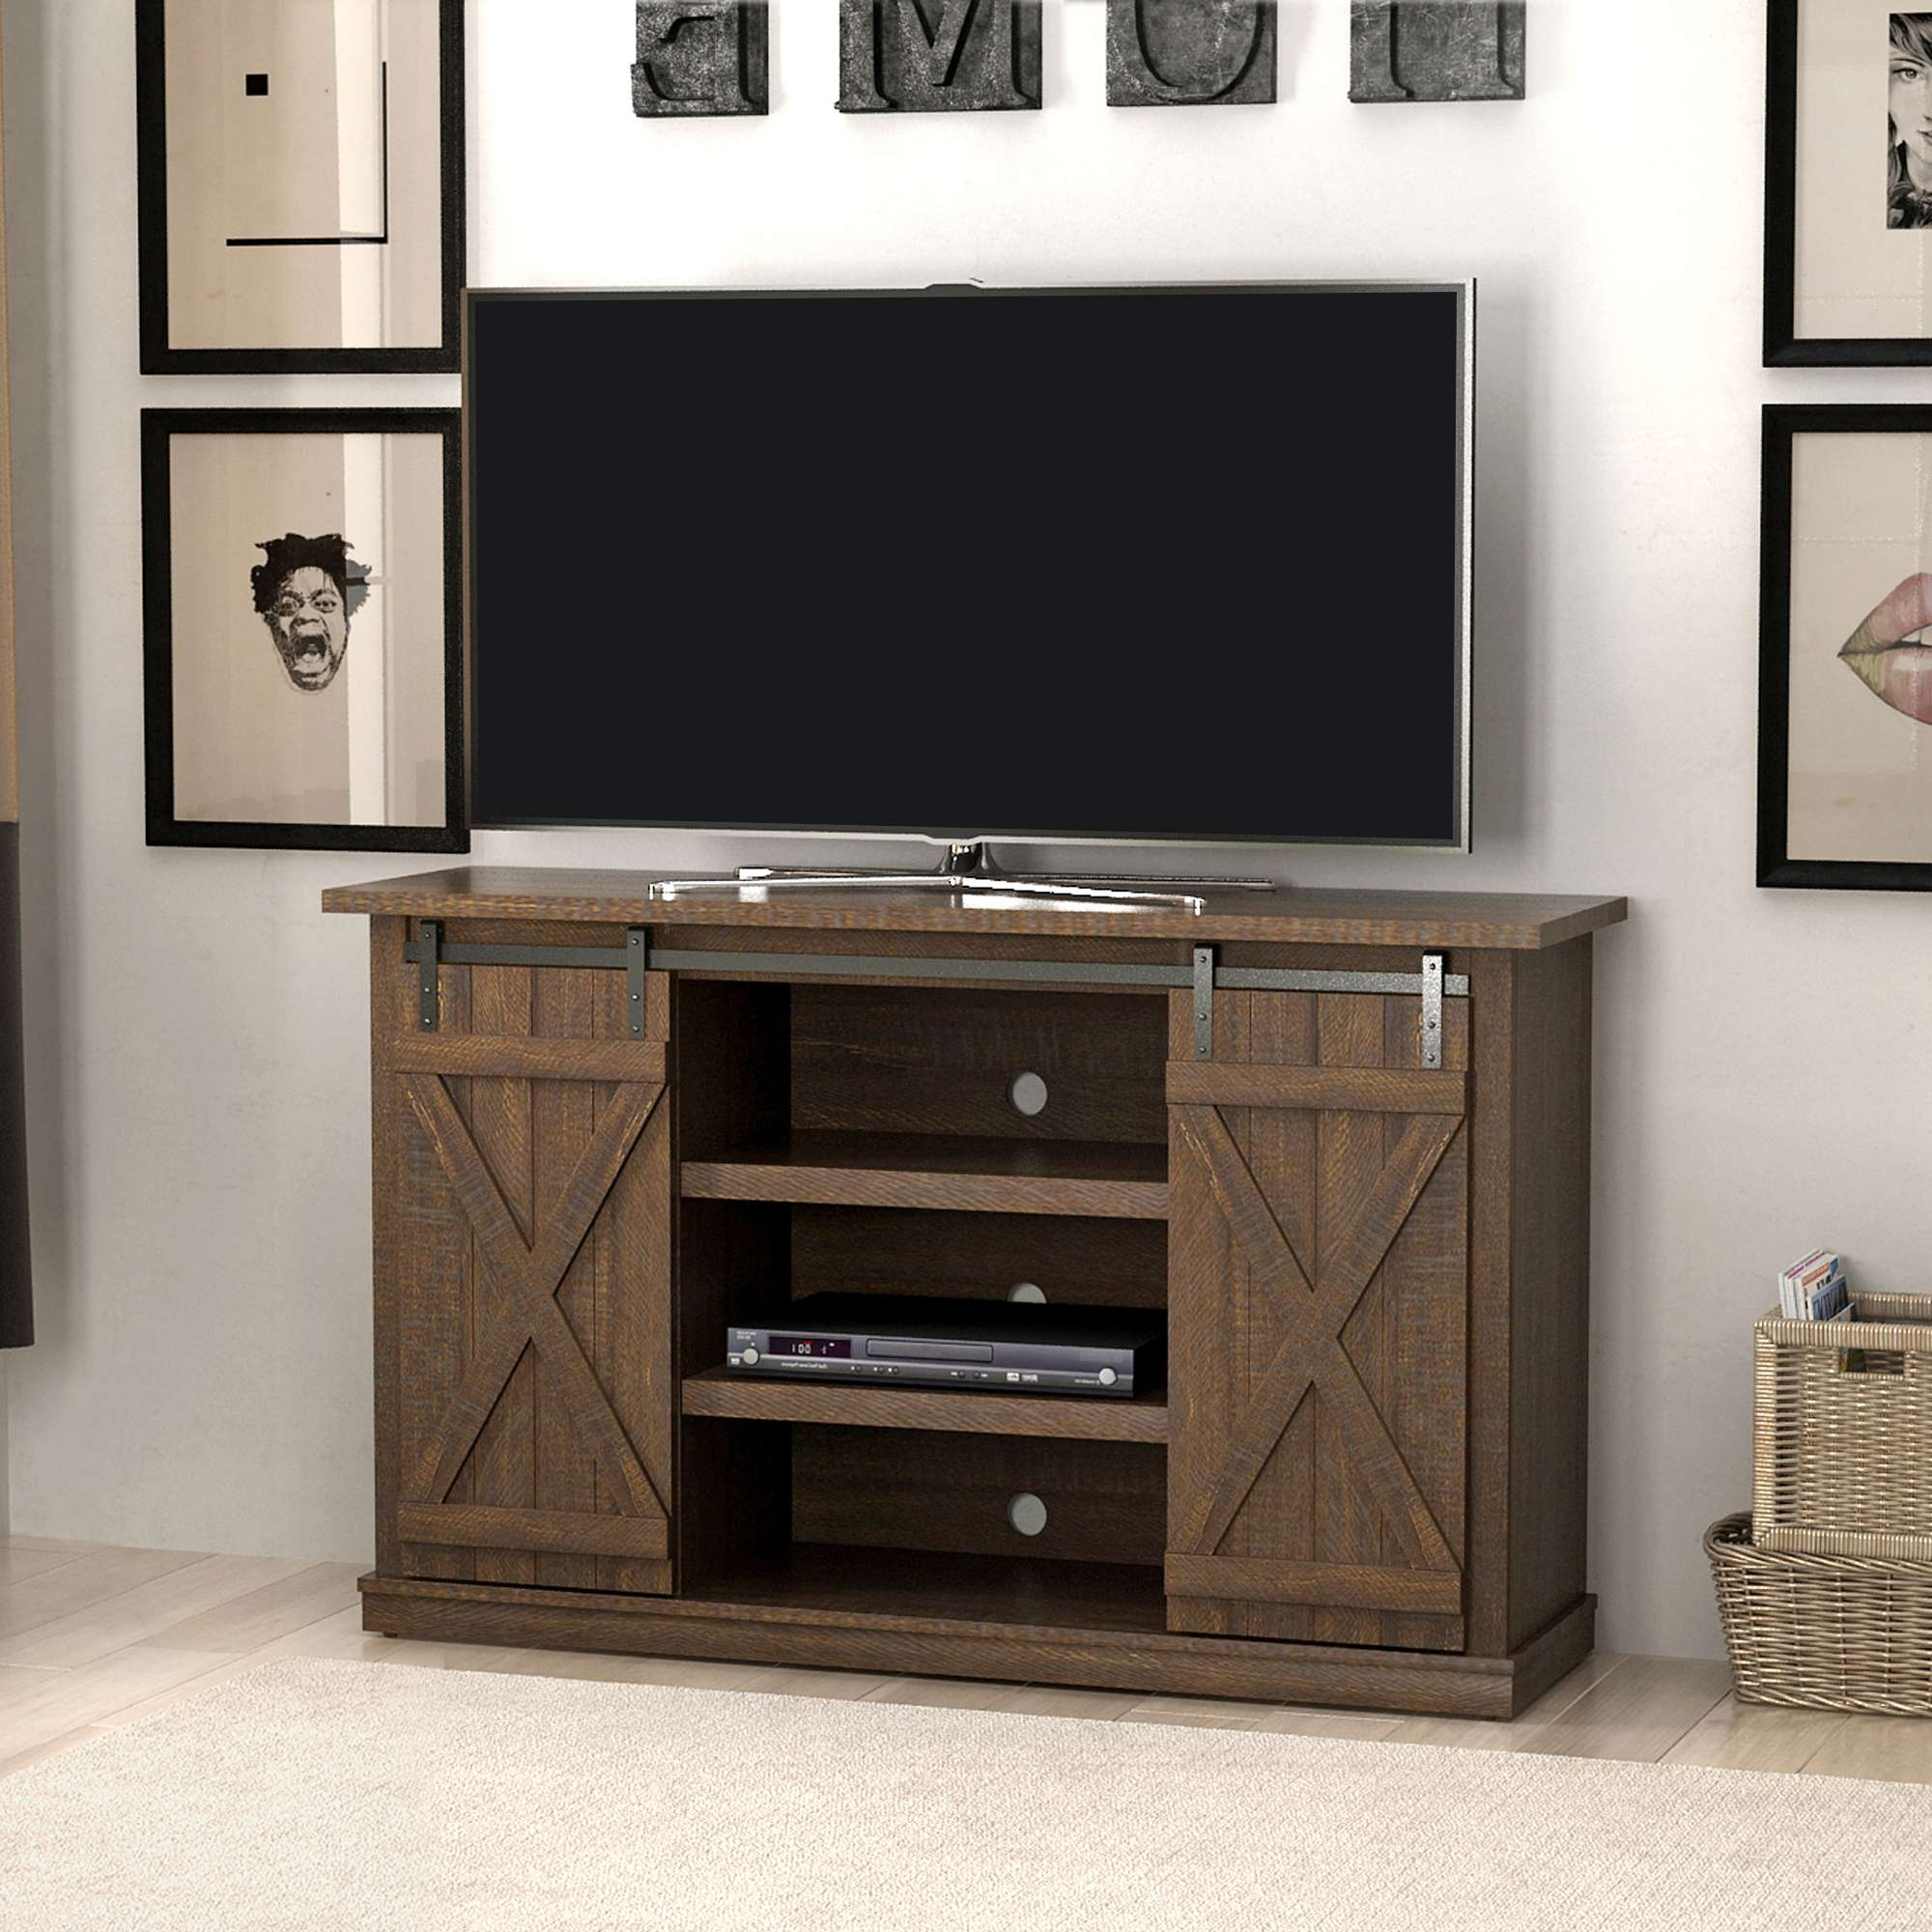 Tv Stands – Walmart In Tv Stands 40 Inches Wide (View 11 of 15)